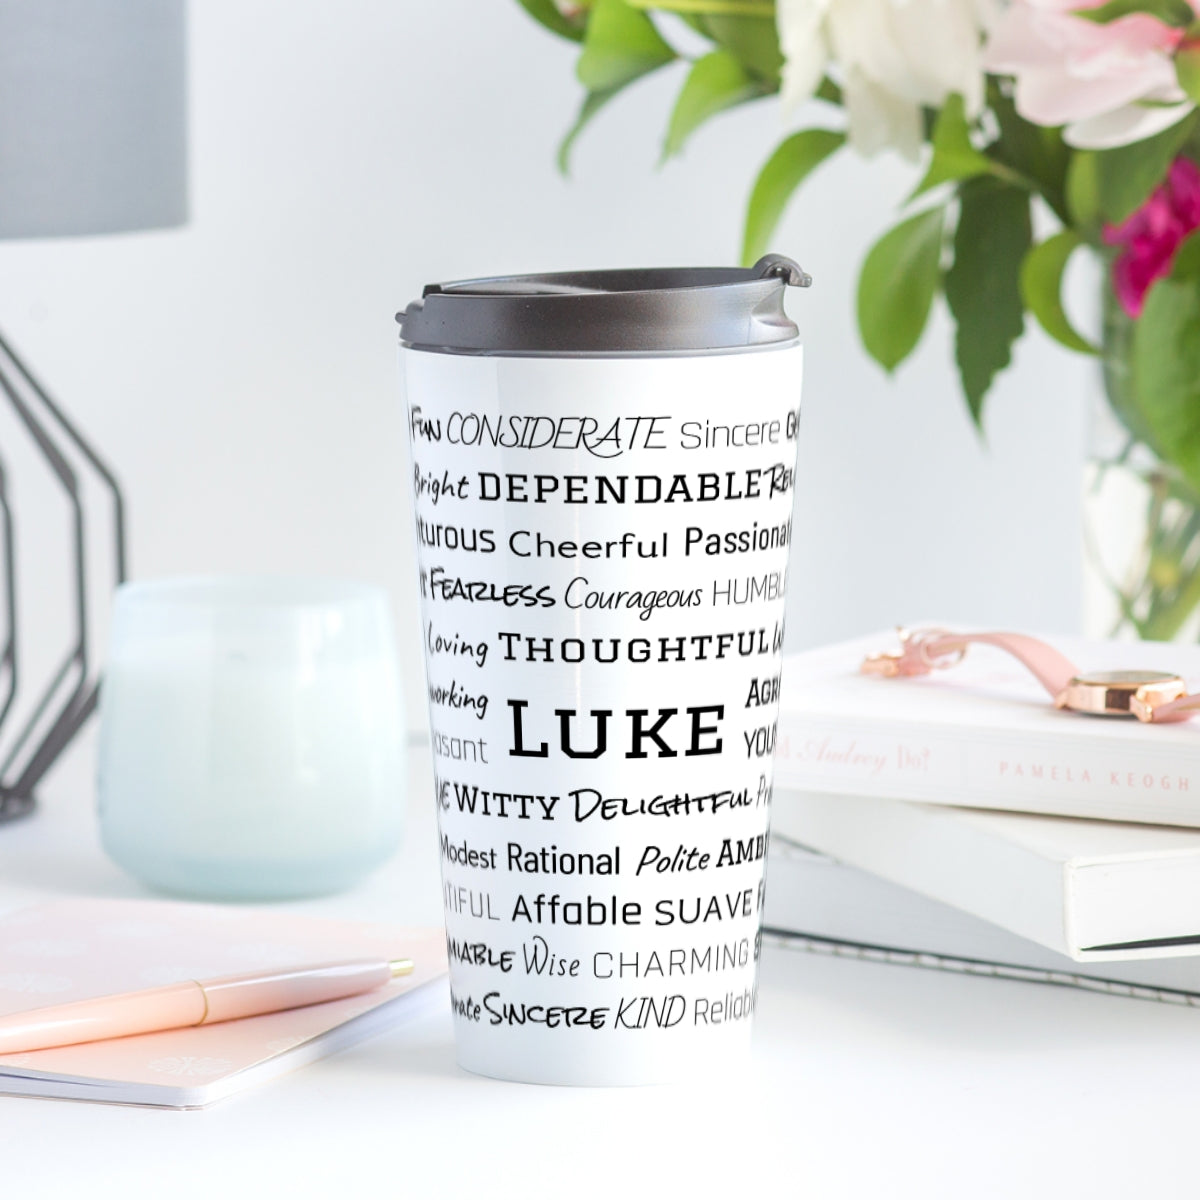 Luke Travel Mug